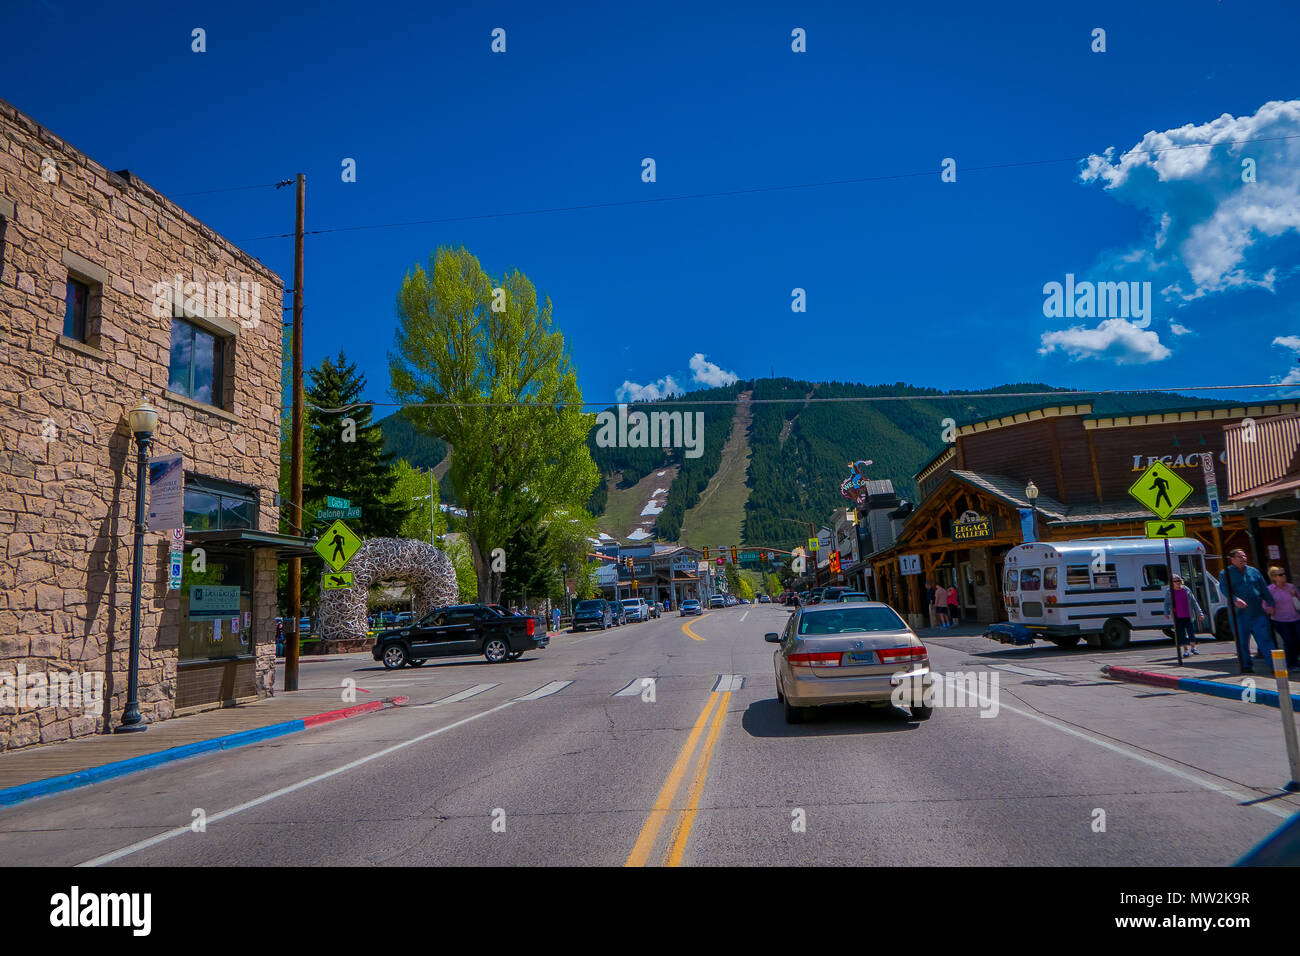 LIVINGSTON, MONTANA, USA - MAY 24, 2018: Historic centre of Livingston near Yellowstone National Park. Even in the summer time there is snow at the hill behind the city - Stock Image